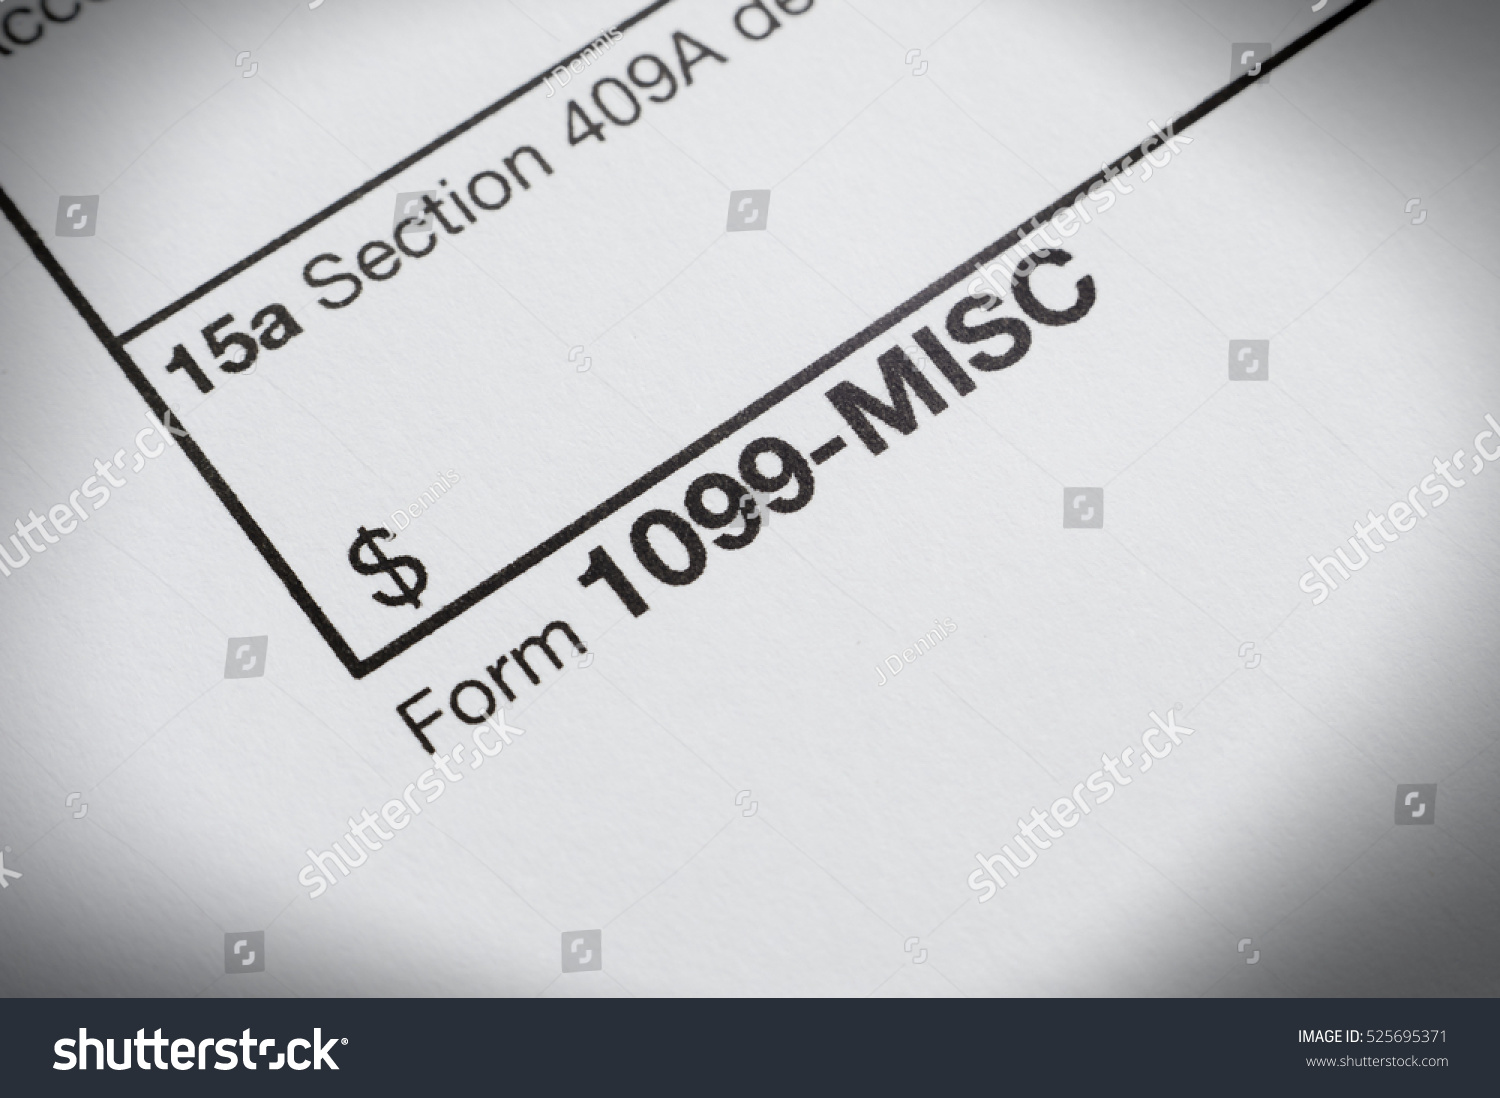 Downloadable 1099 misc forms gallery standard form examples tax 1099 misc form stock photo 525695371 shutterstock tax 1099 misc form falaconquin falaconquin